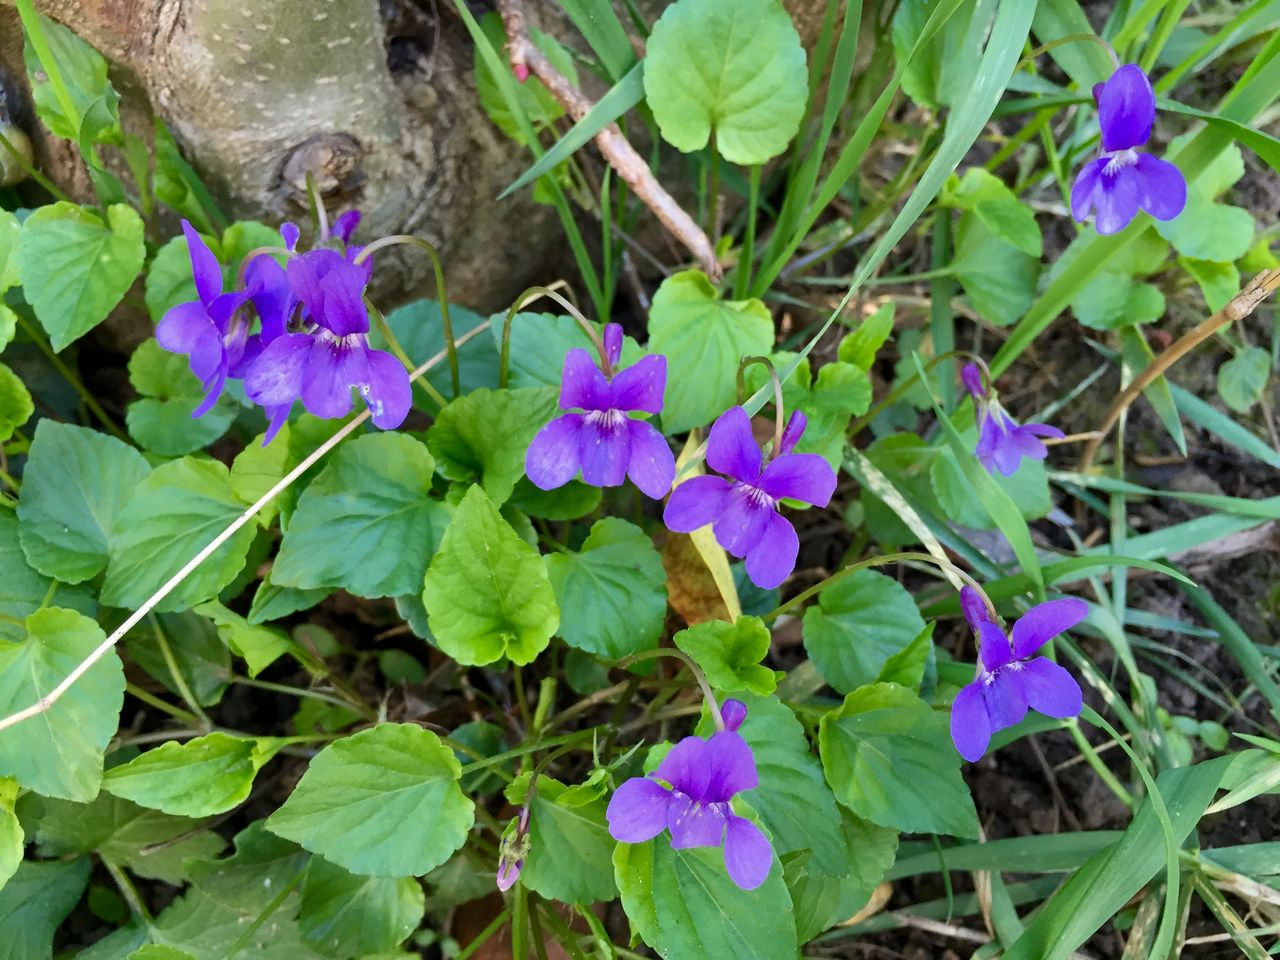 growth, flower, leaf, plant, fragility, nature, beauty in nature, freshness, outdoors, petal, high angle view, green color, blooming, purple, no people, day, flower head, close-up, petunia, periwinkle